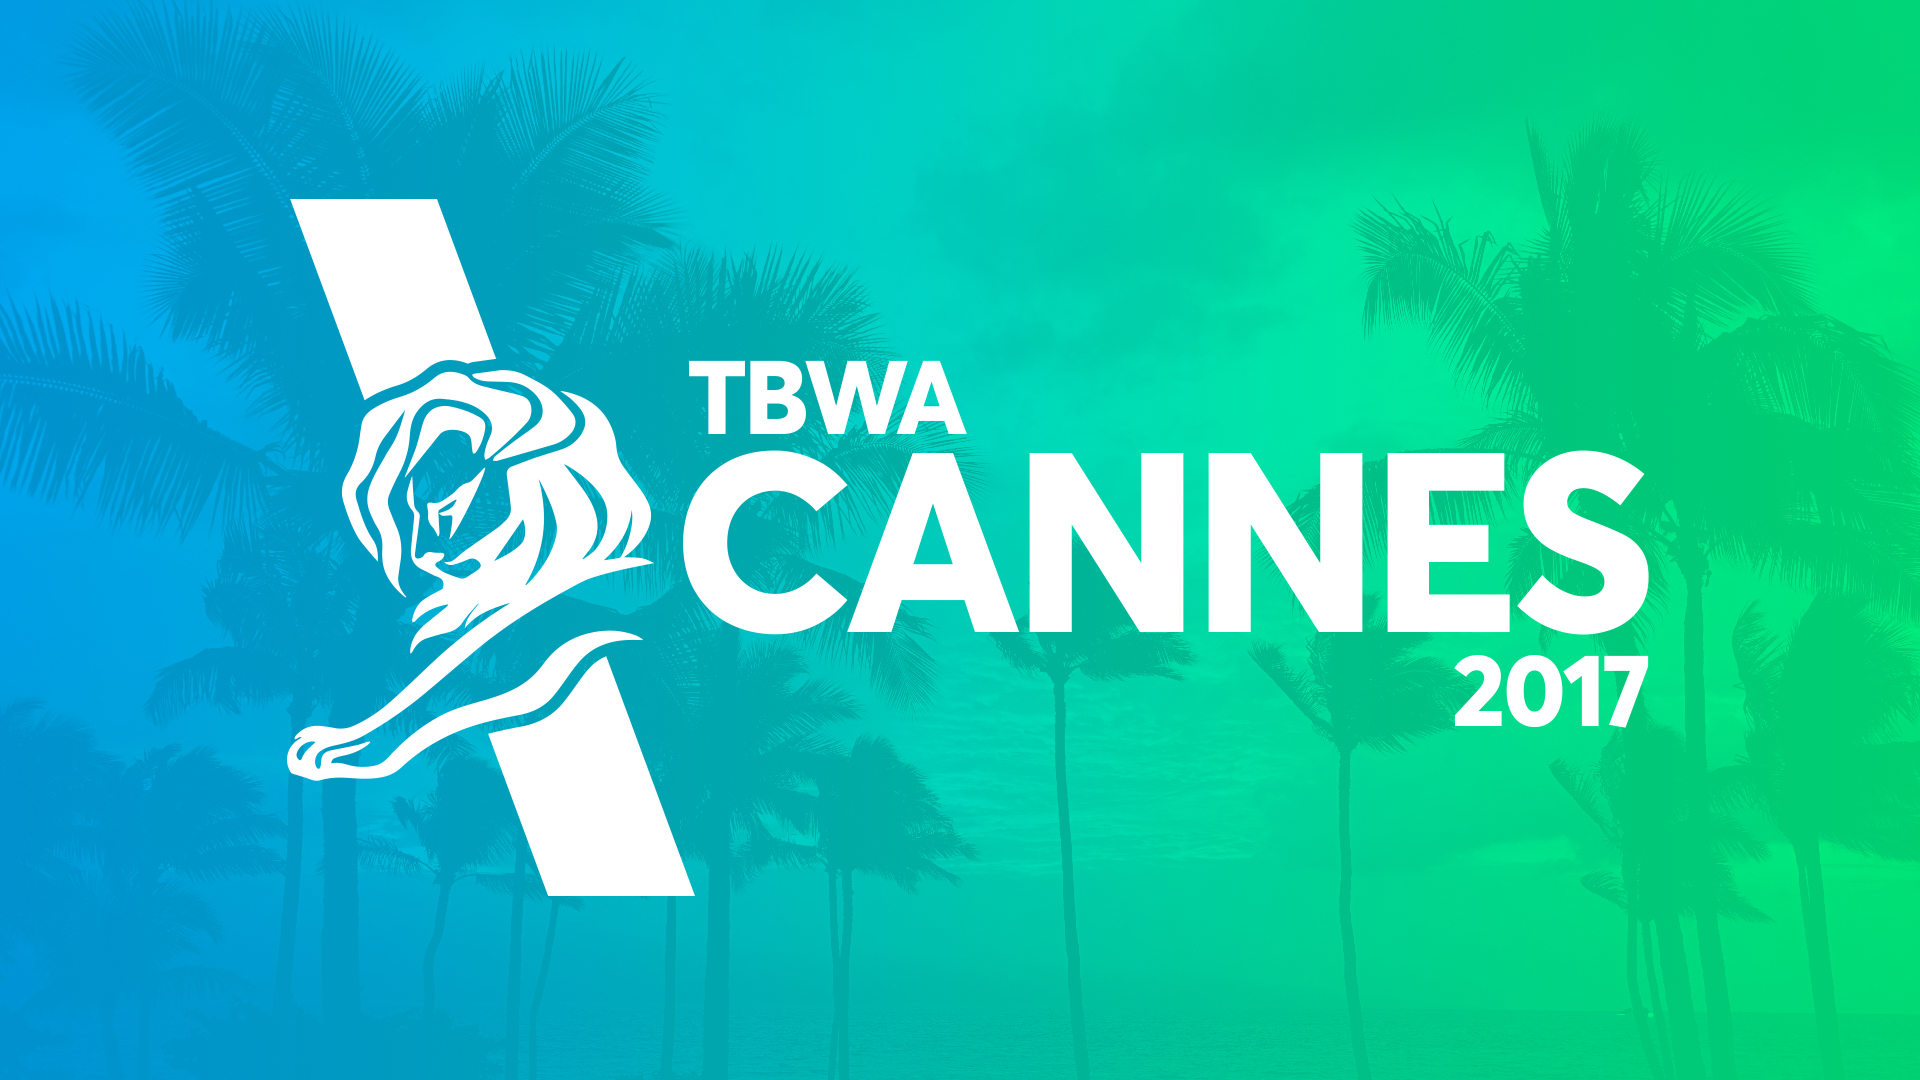 TBWA launches Cannes Lions website in the lead up to Festival of Creativity